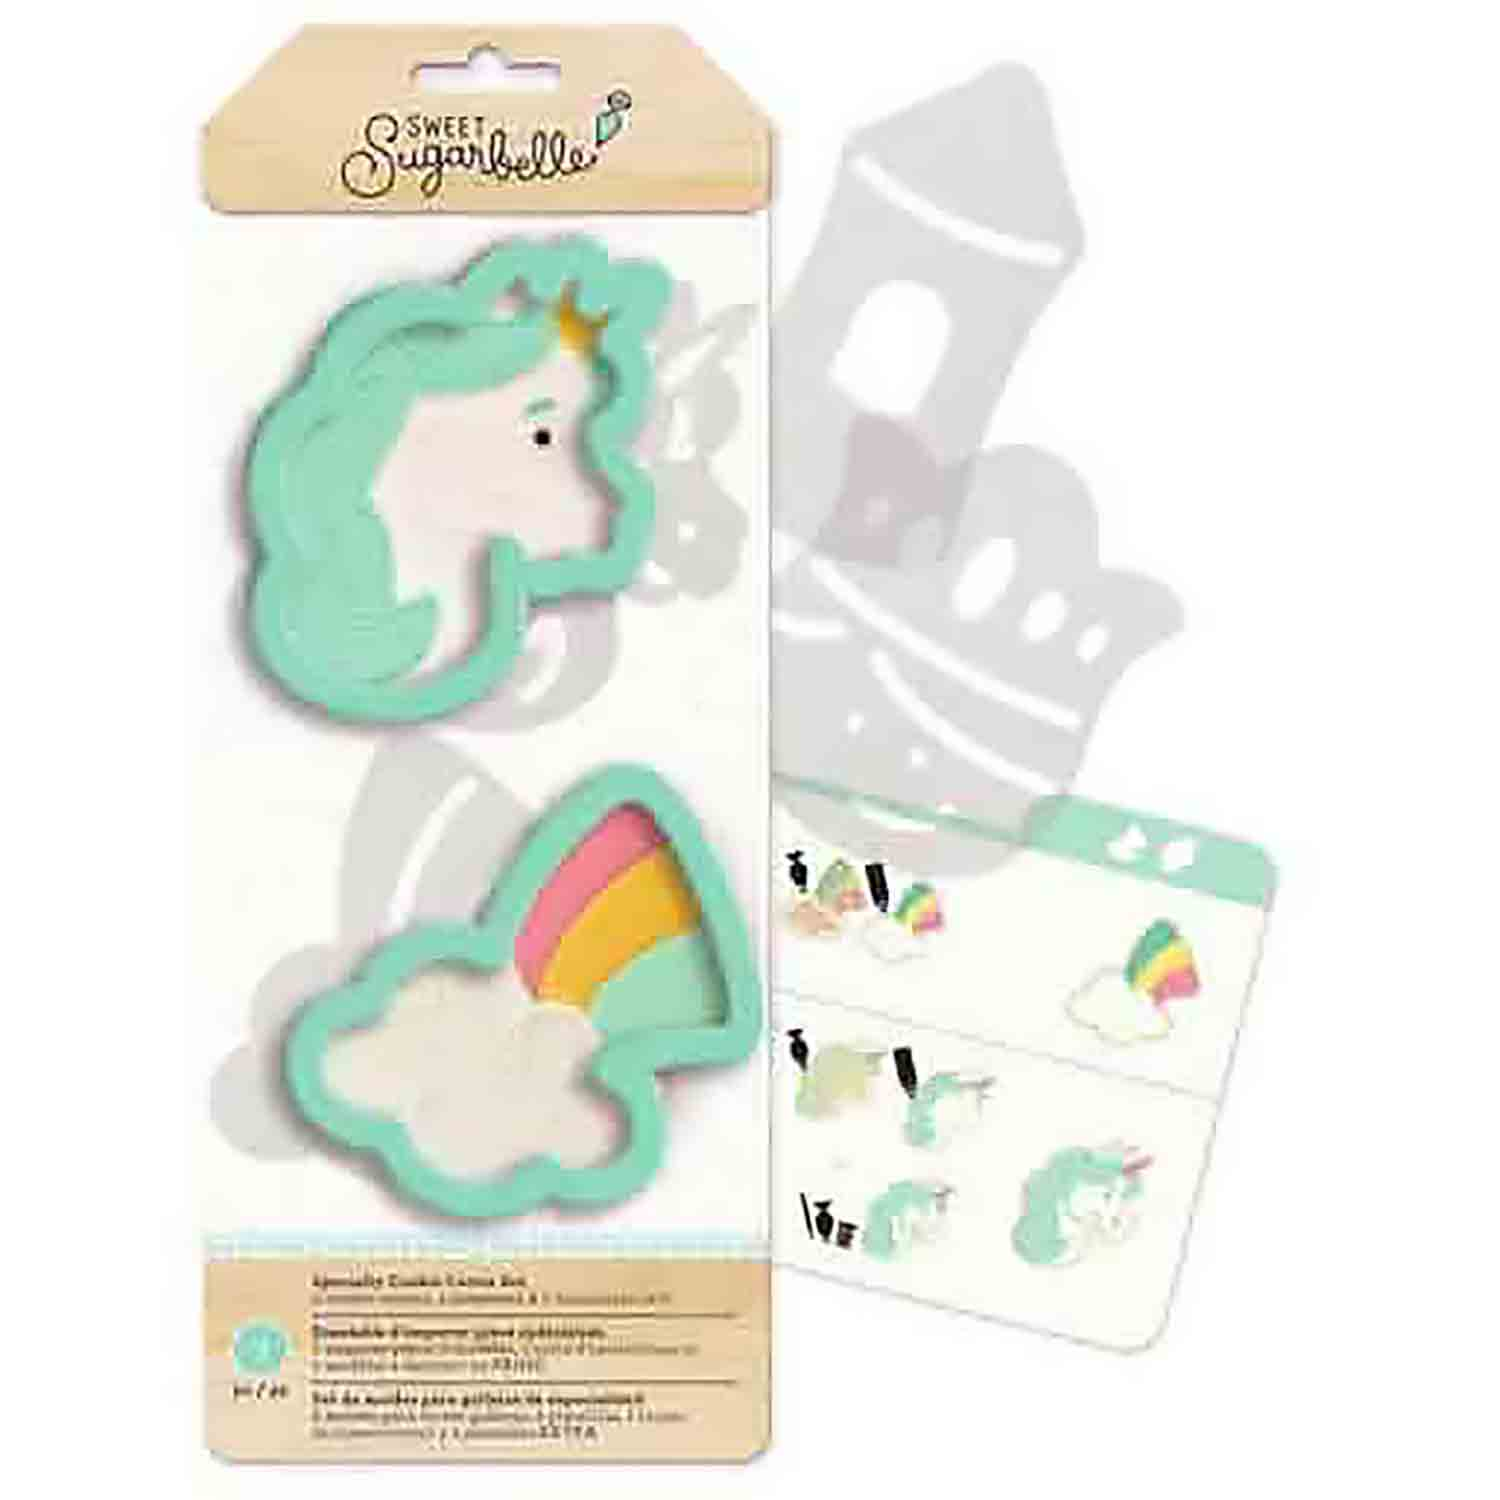 Enchanted Cookie Cutter Stencil Set by Sweet Sugarbelle